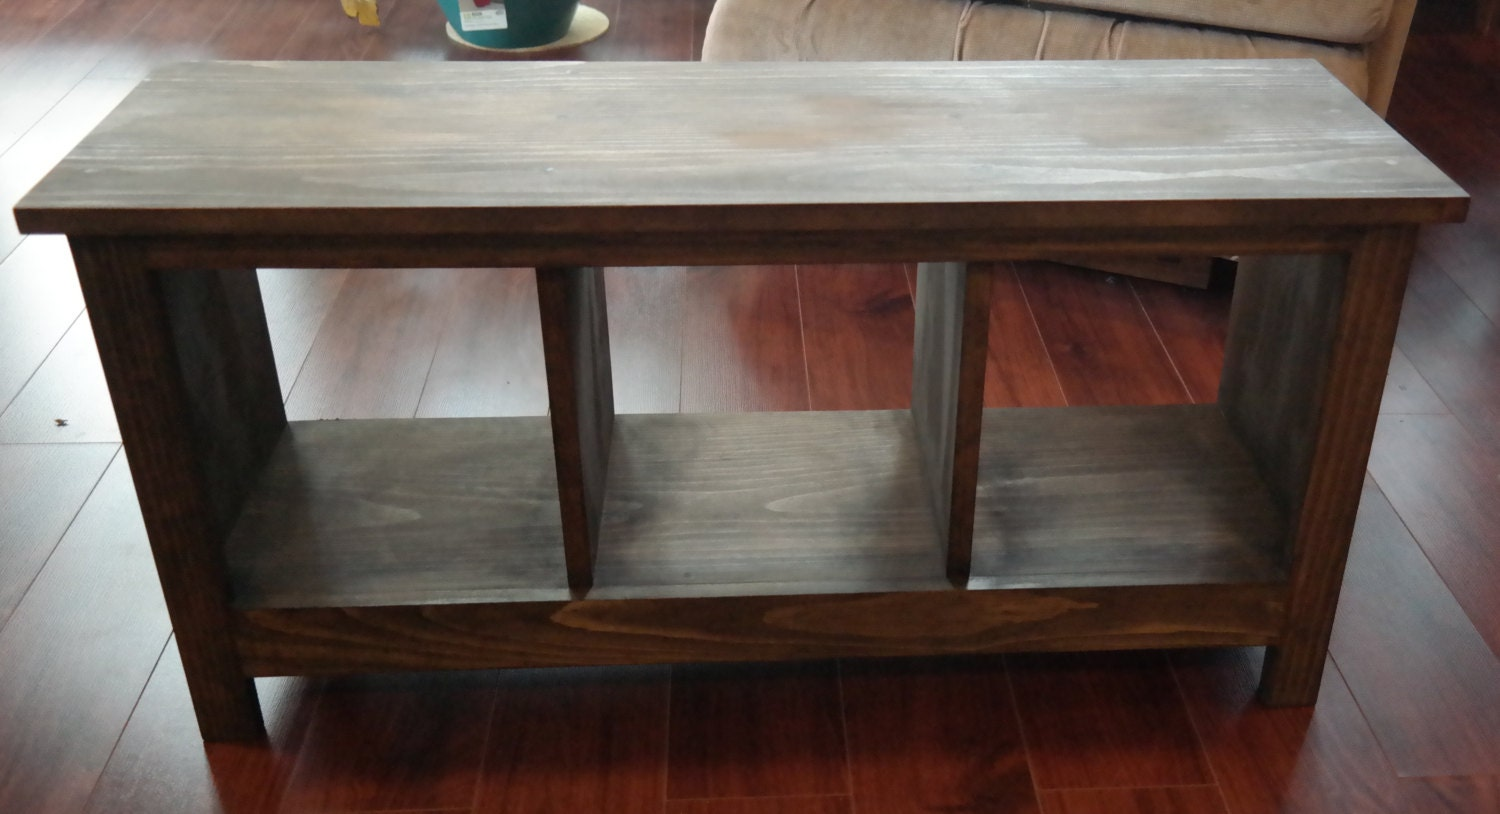 Foyer Benches Sale : On sale entryway bench custom furniture shoe cubby